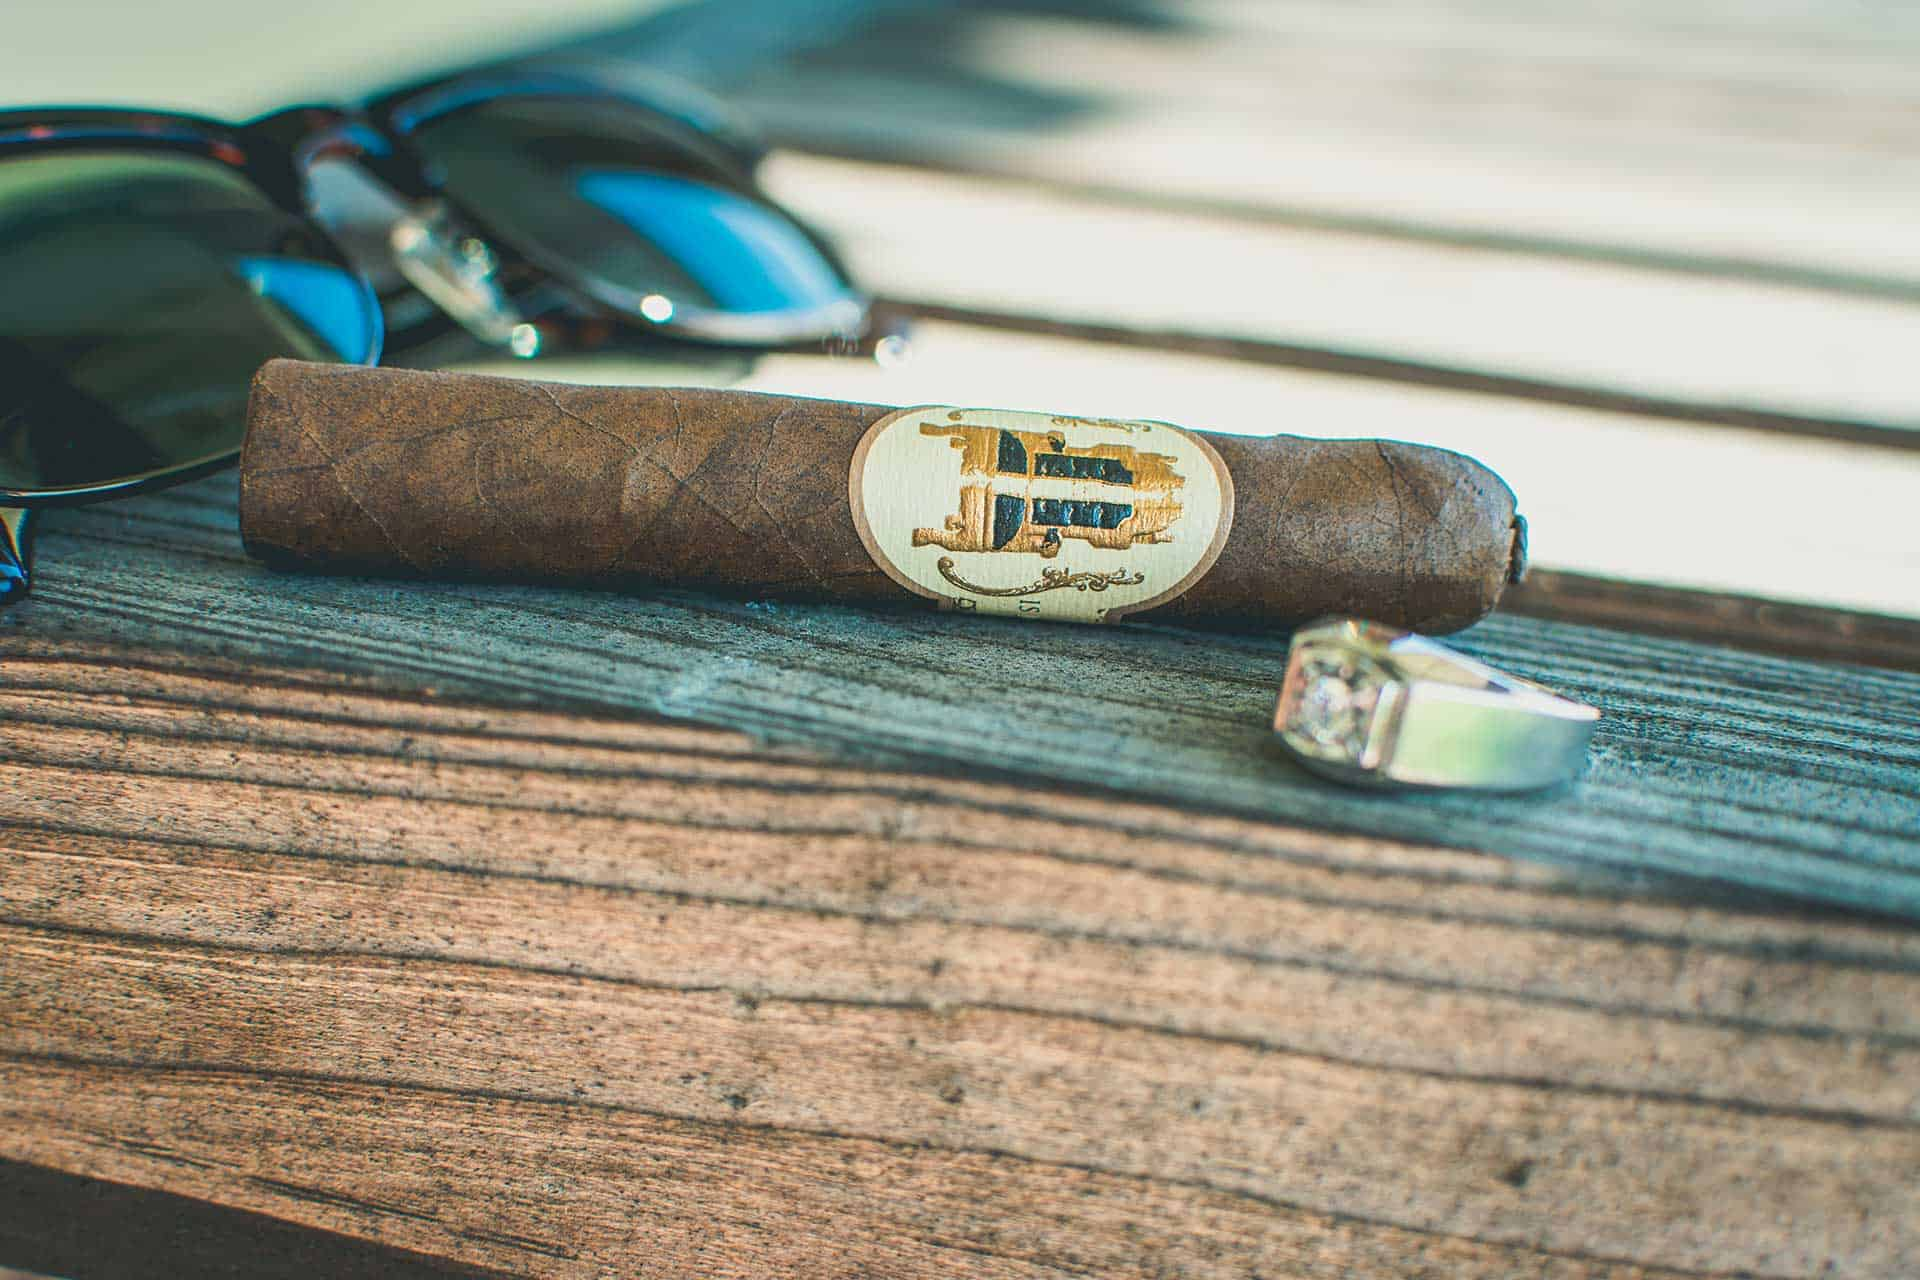 Caldwell Collection The King Is Dead Manzanita Petit Corona Review